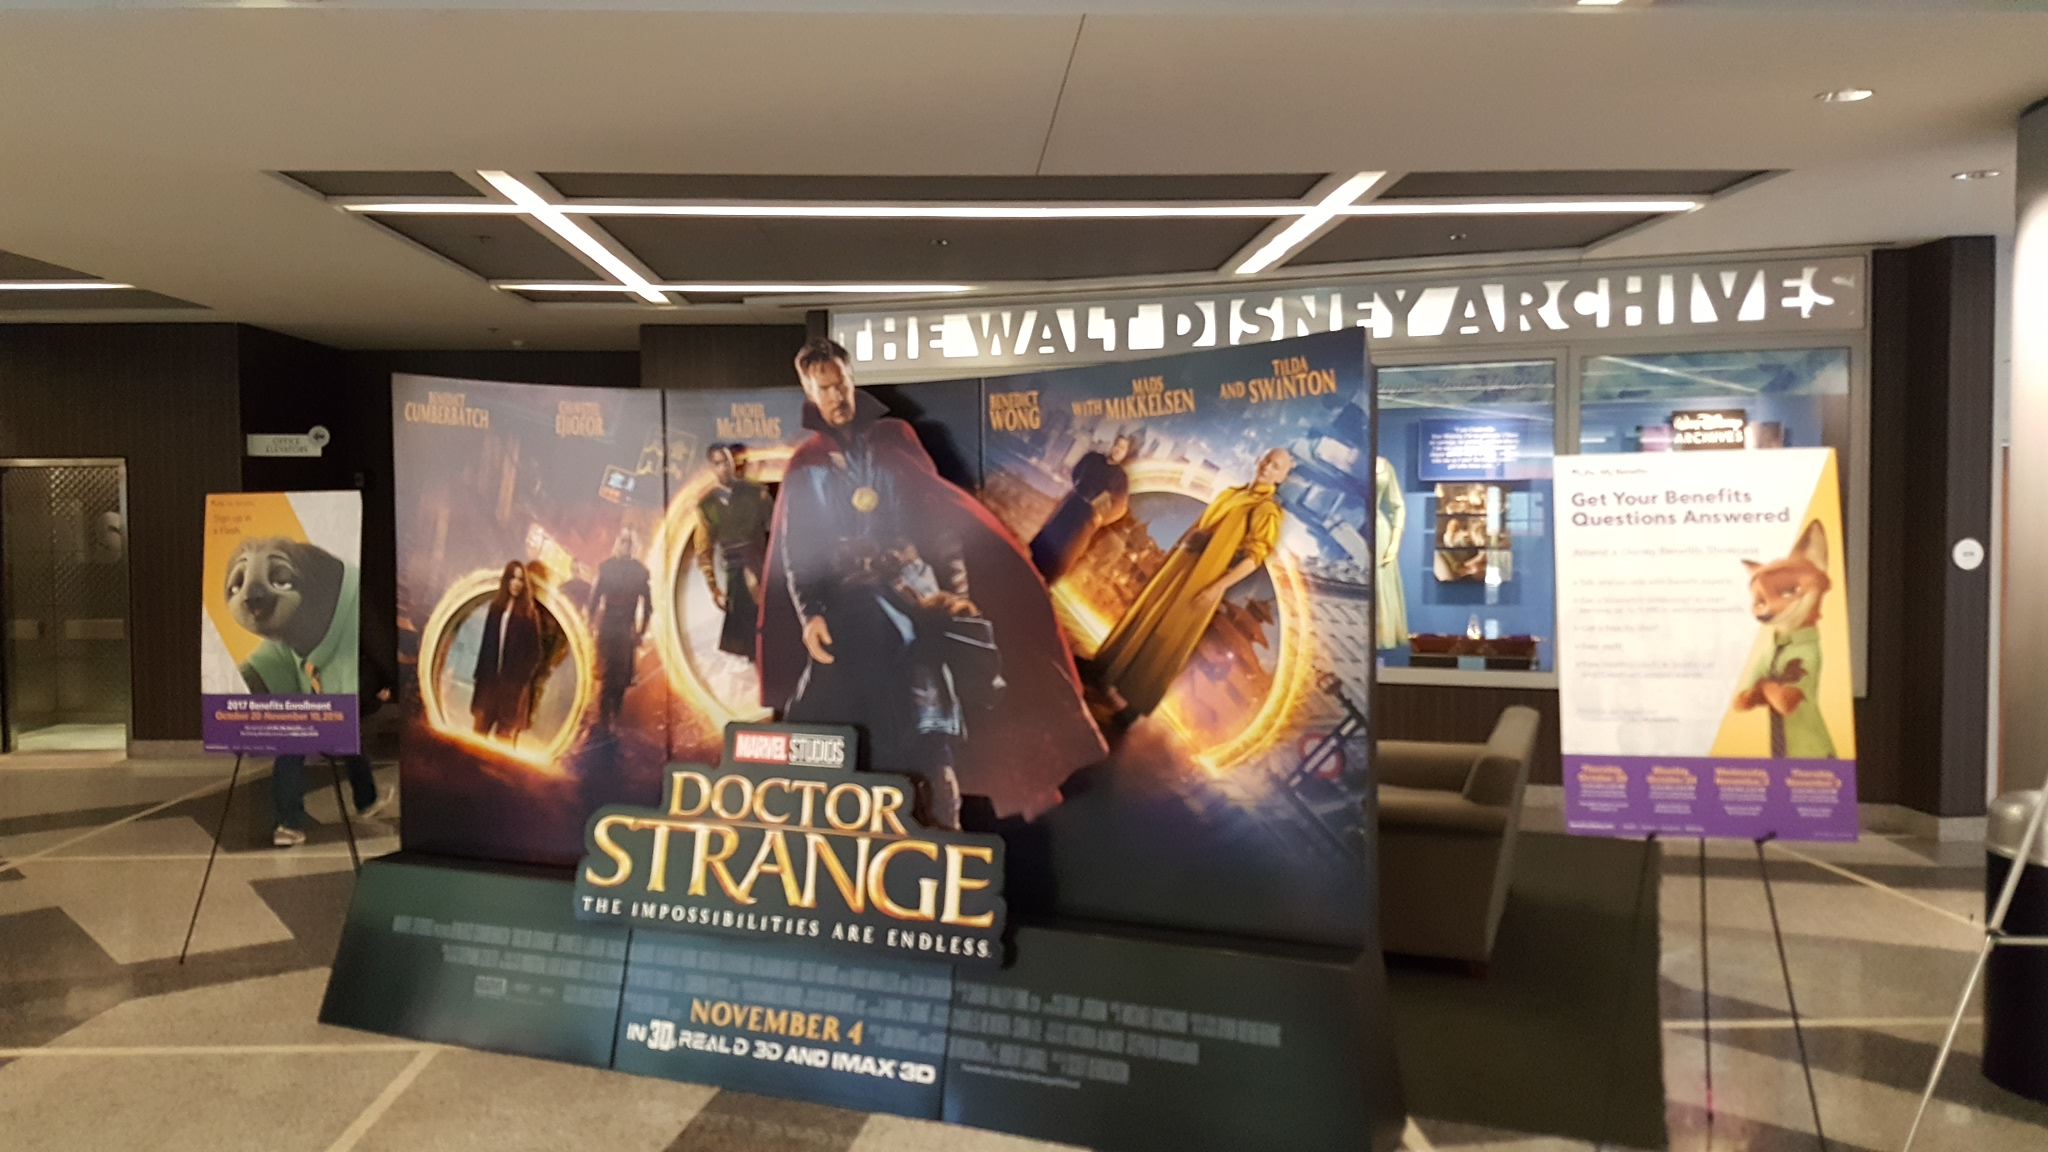 Doctor Strange Movie Film #DoctorStrangeEvent